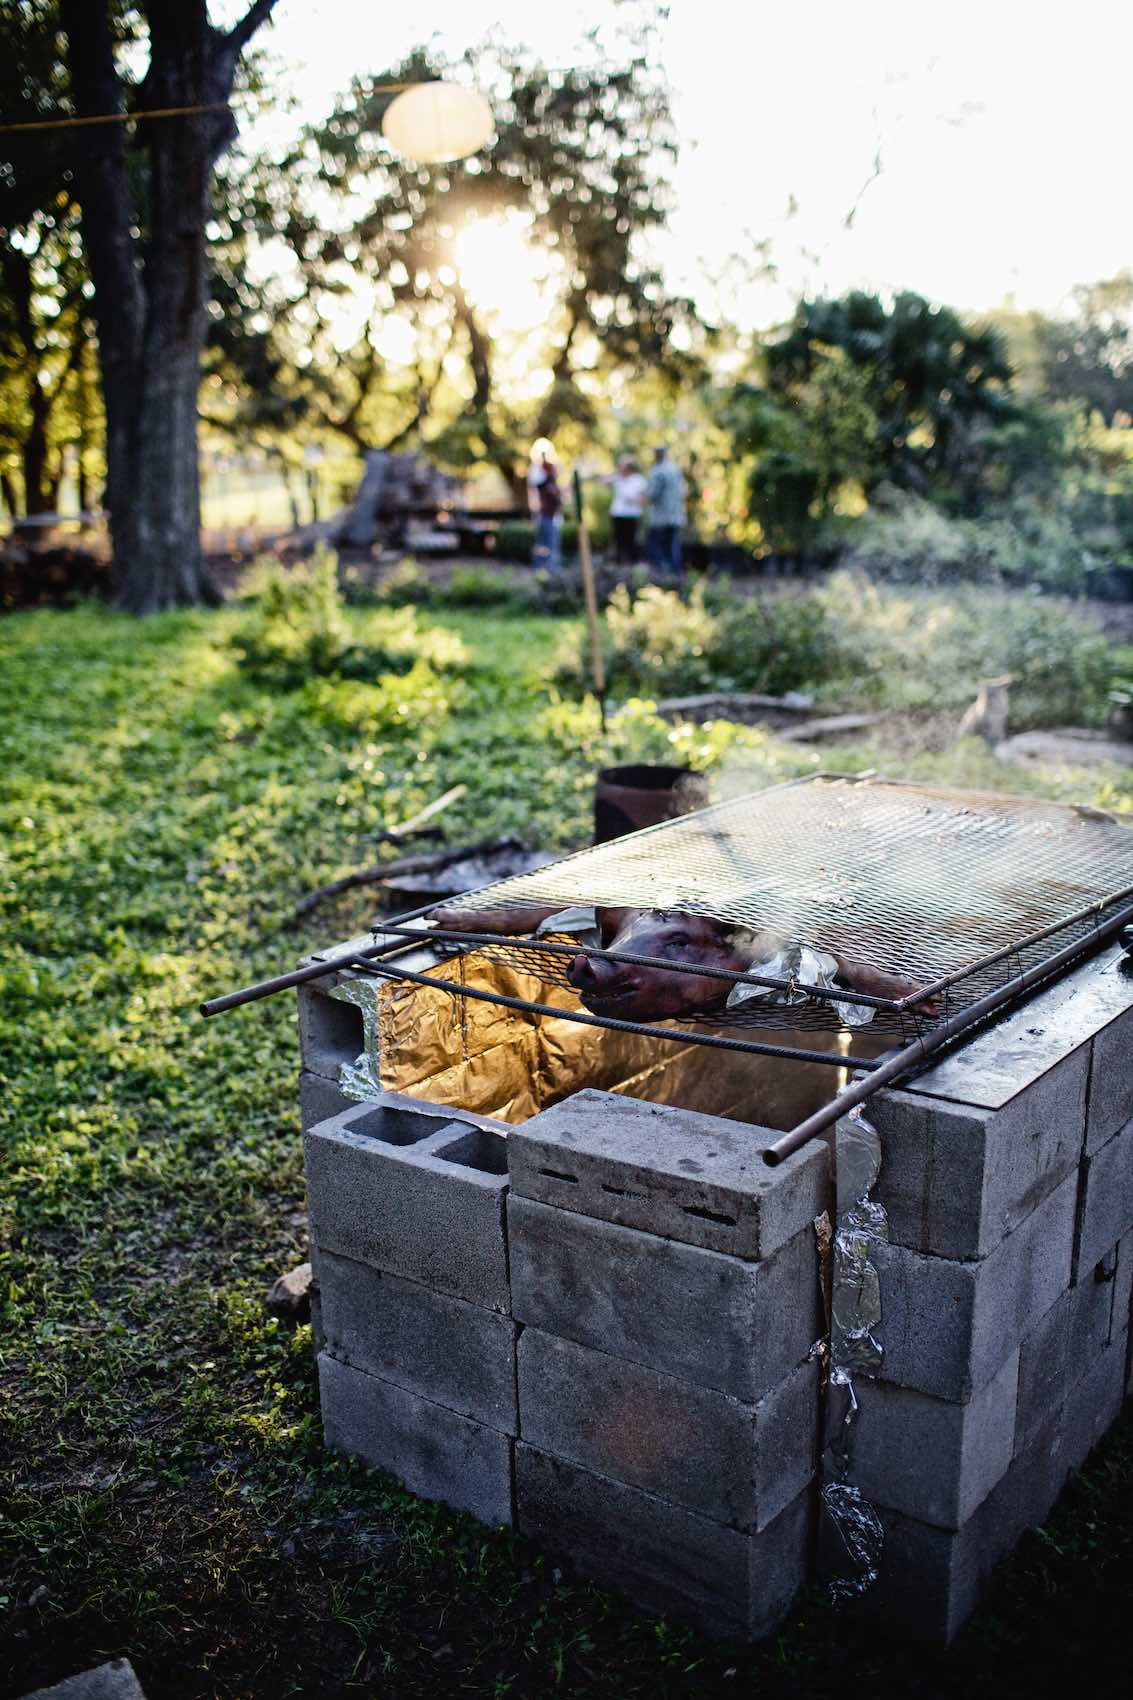 Jody Horton Photography - Whole hog cooking above outdoor smoke pit.